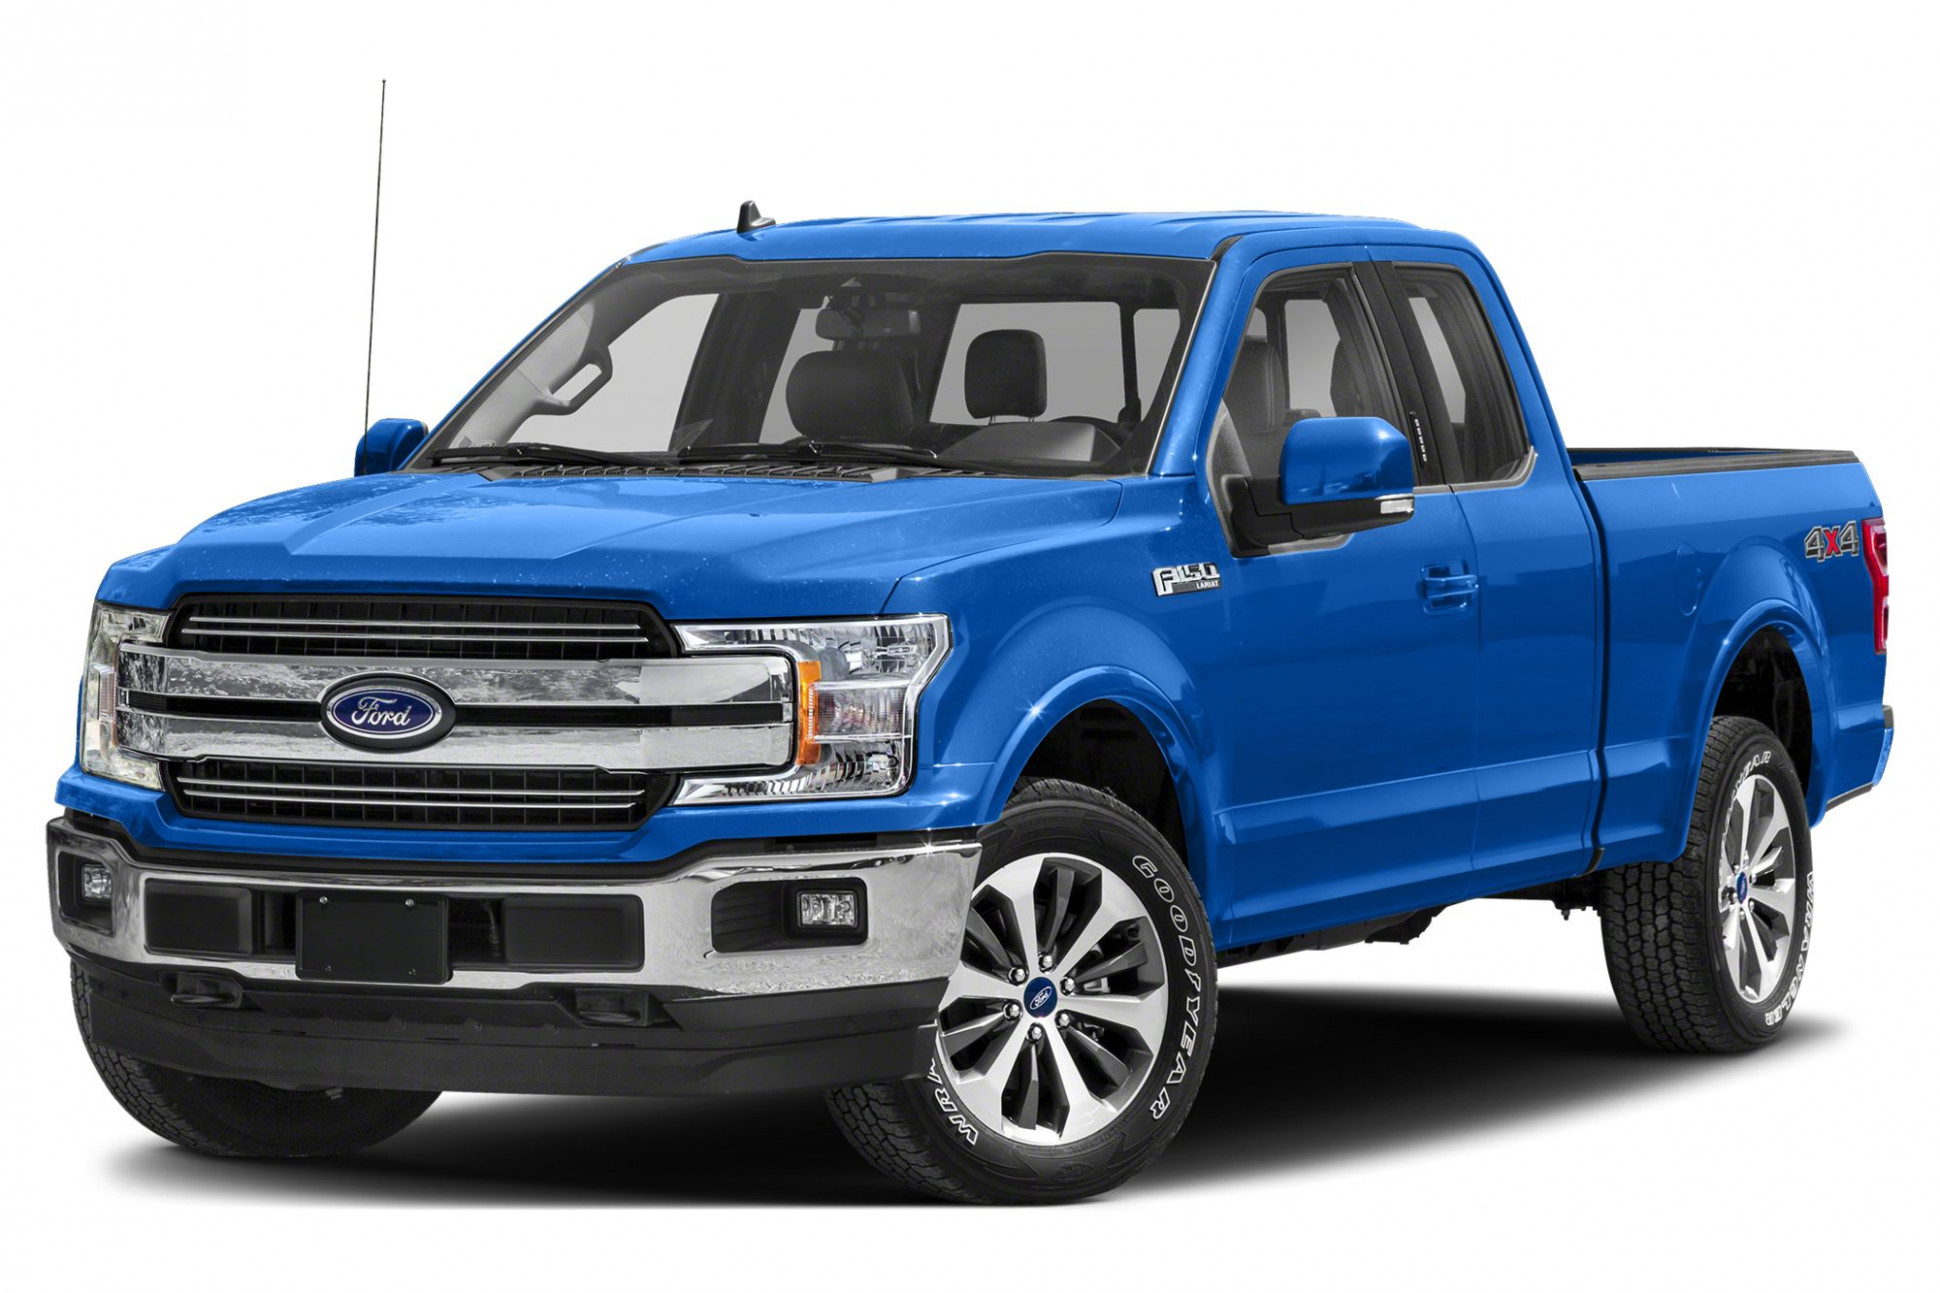 8 Ford Expedition, F-8, Ranger: Recall Alert | News | Cars